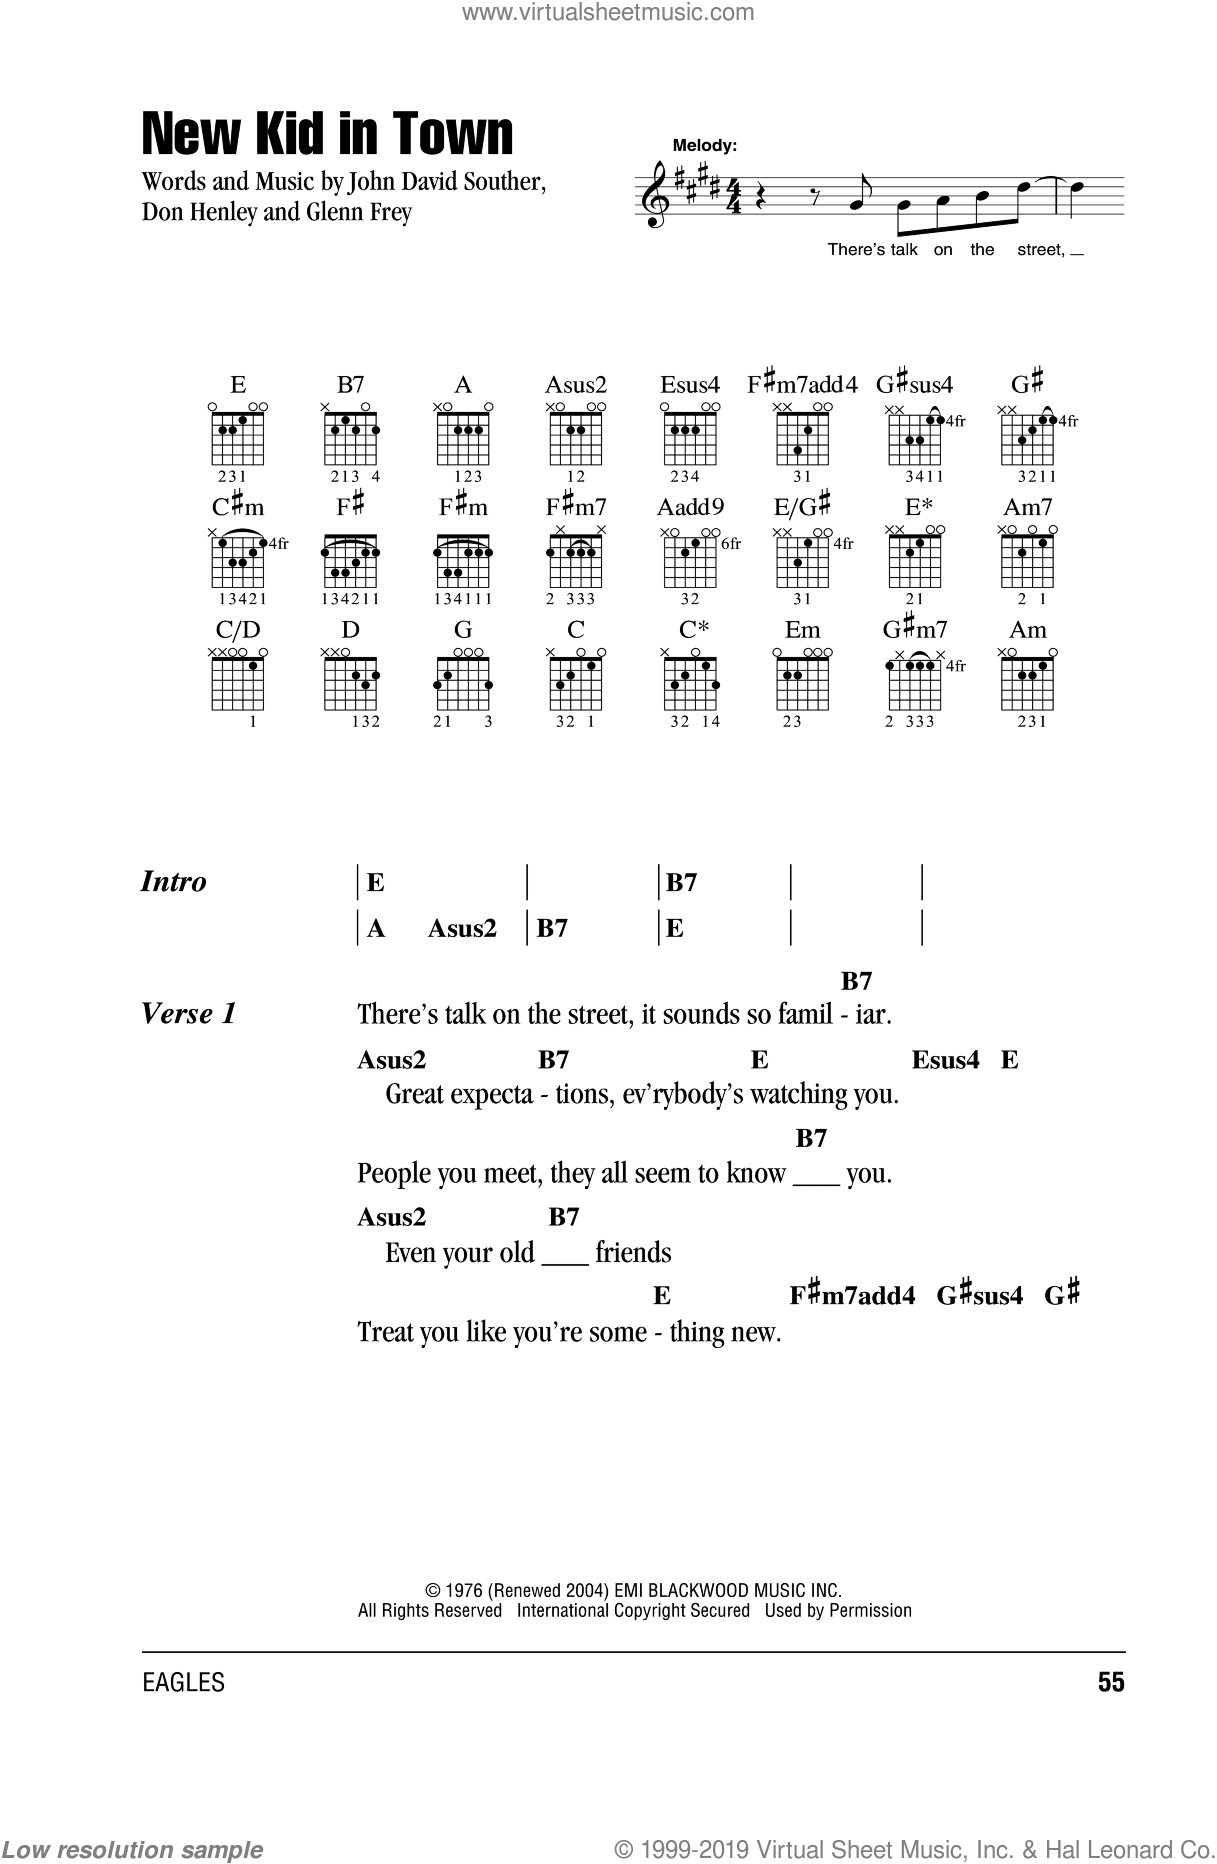 New Kid In Town sheet music for guitar (chords) by Don Henley, The Eagles, Glenn Frey and John David Souther, intermediate skill level